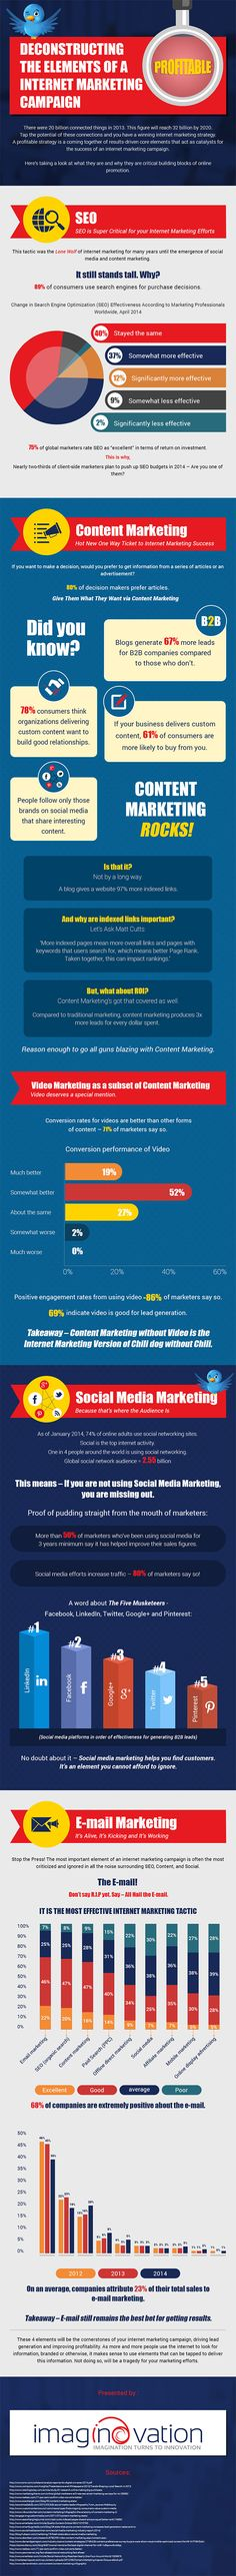 Internet Marketing Essentials The 4 Strategies Every Business Must Use #Infographic